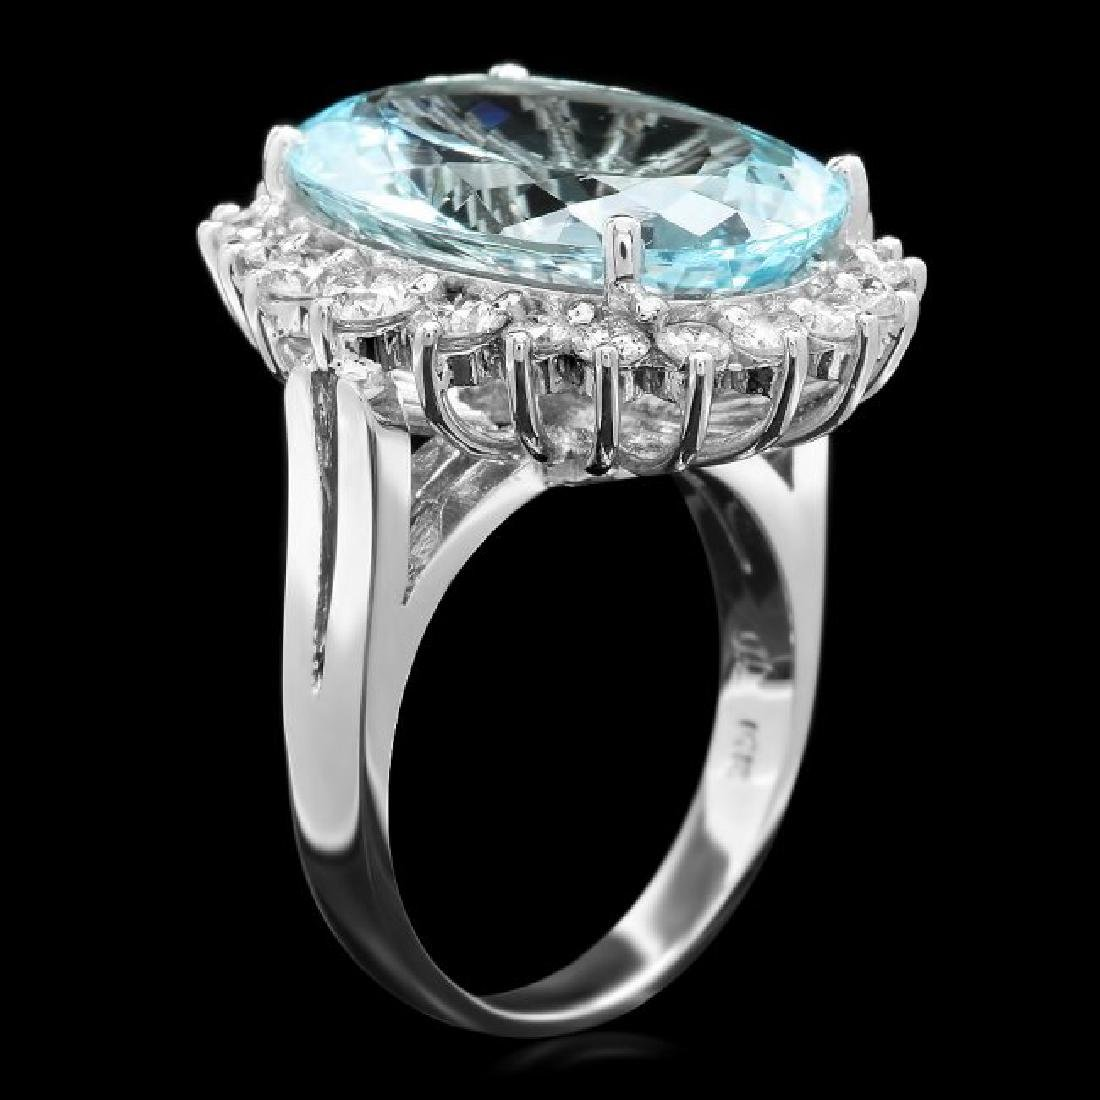 14k Gold 9.00ct Aquamarine 1.30ct Diamond Ring - 2